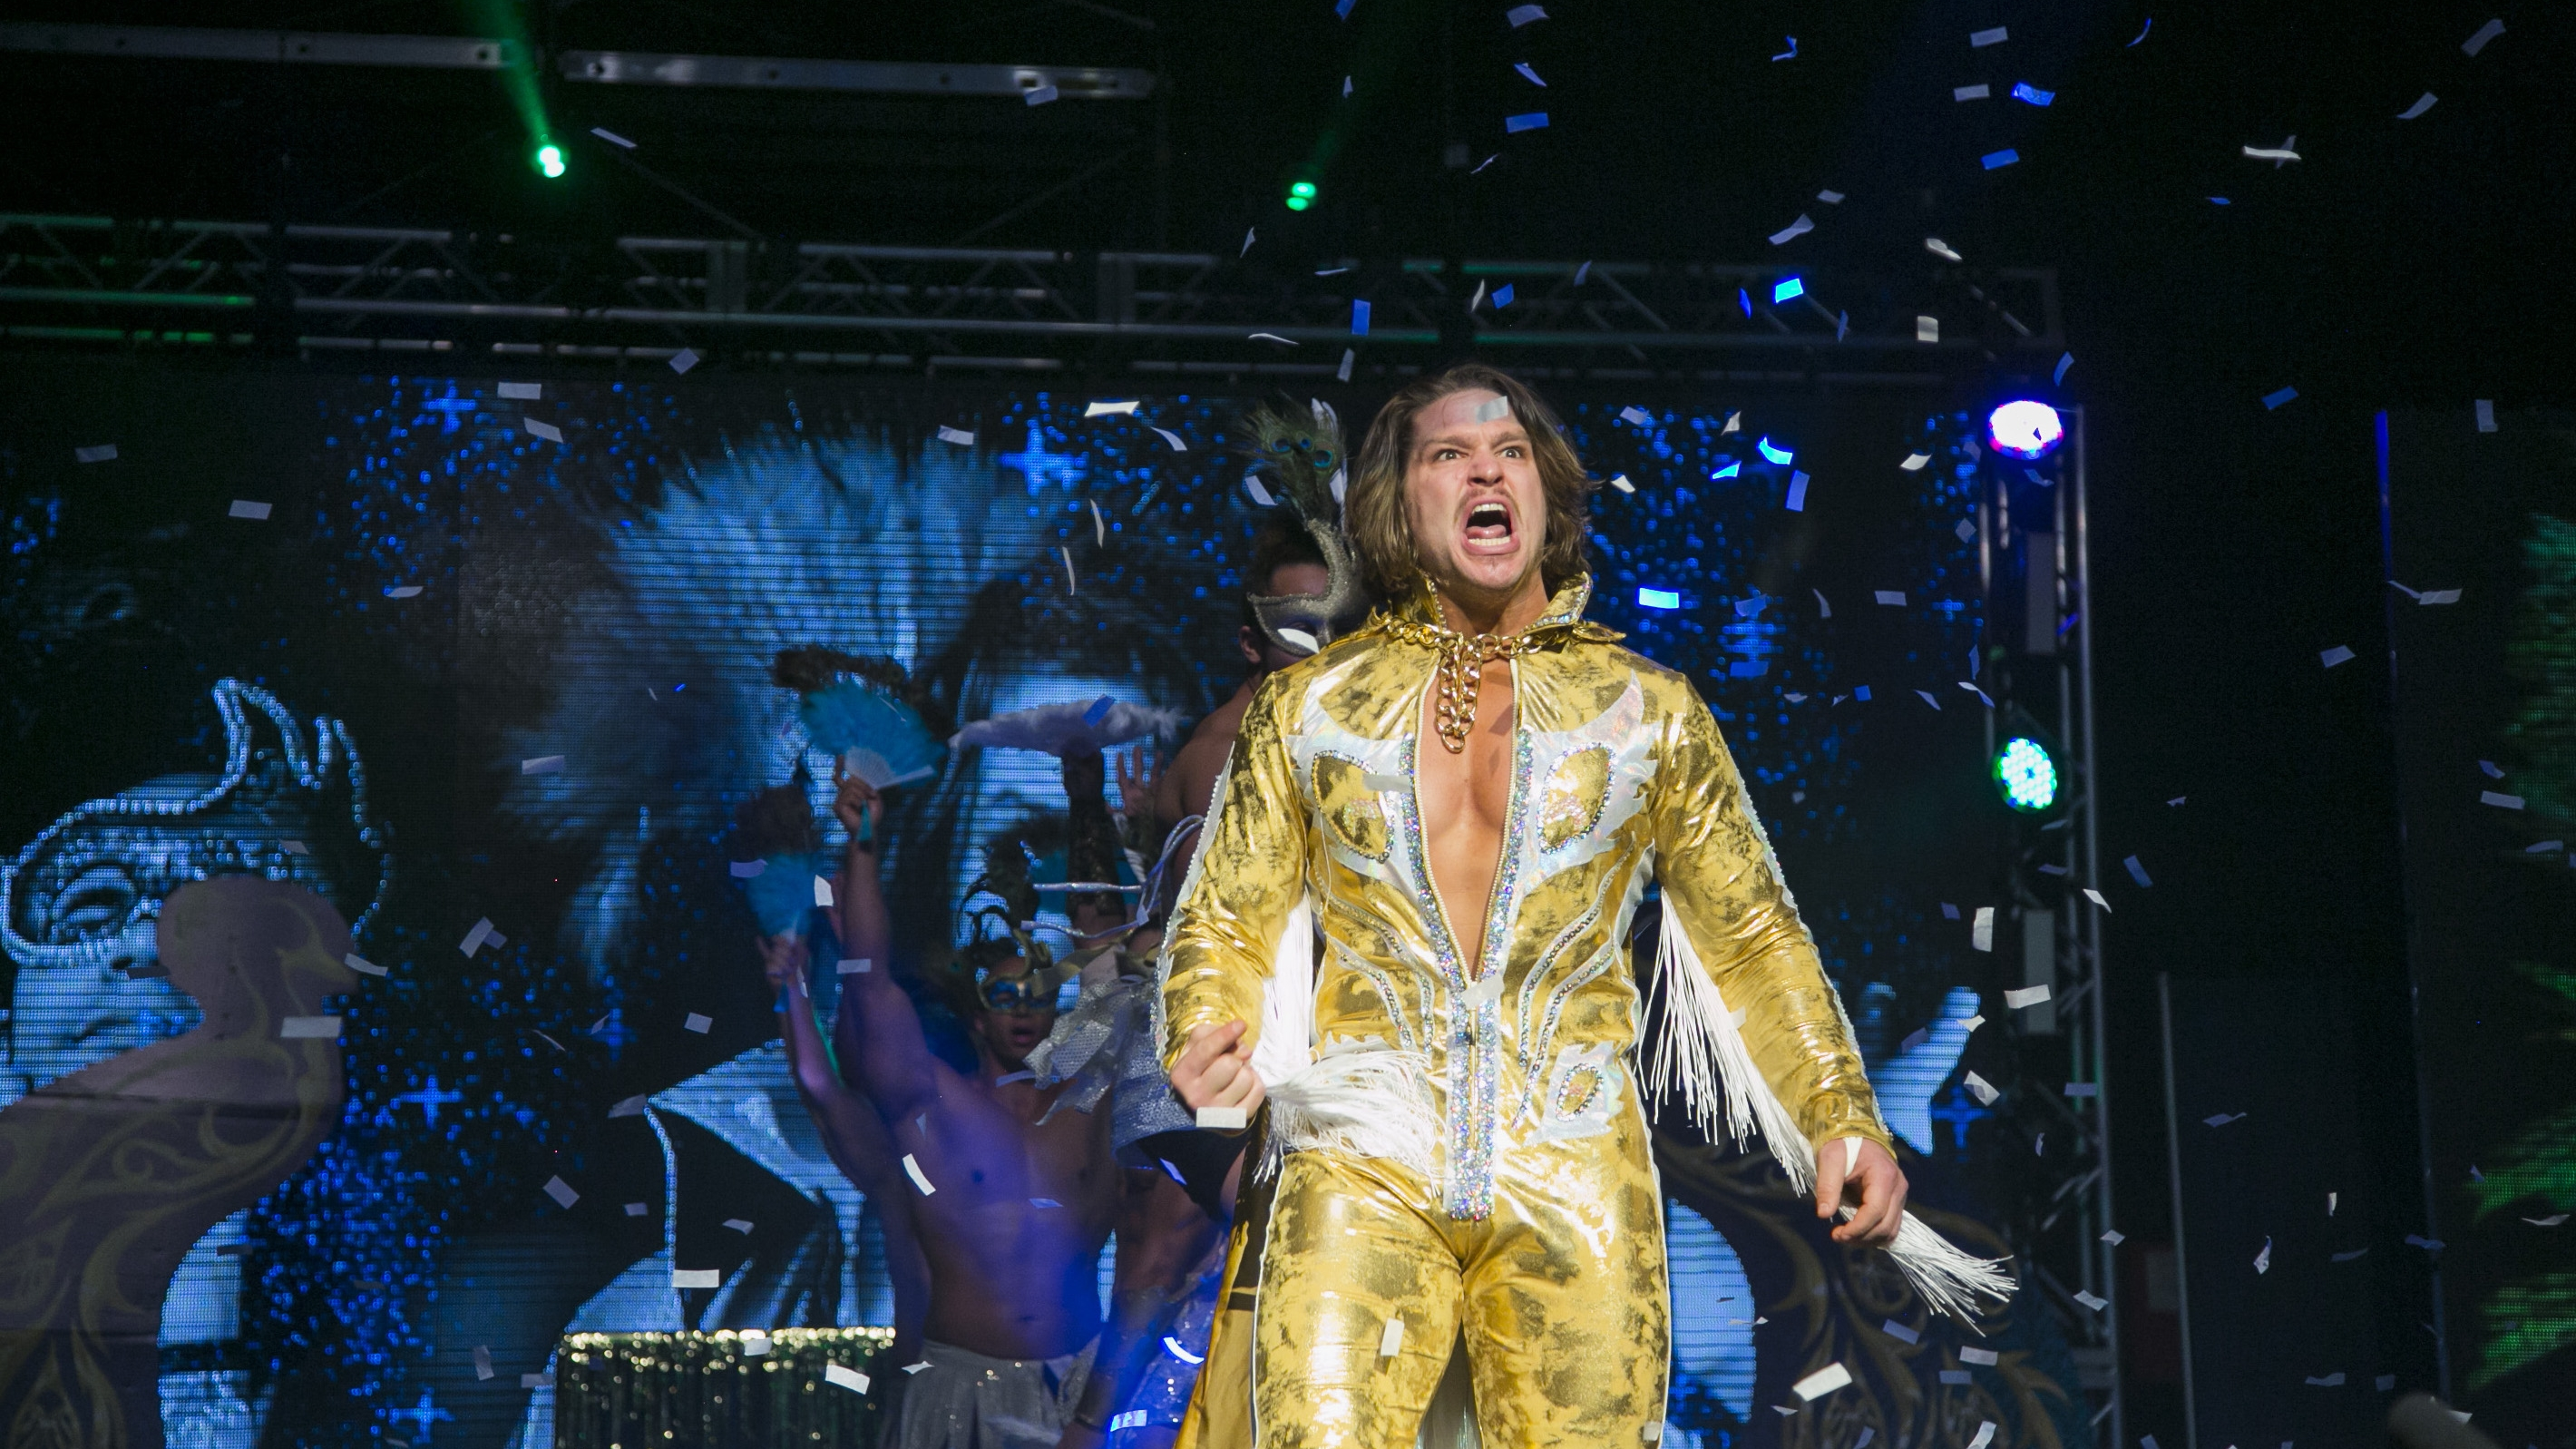 Dalton Castle ROH Final Battle